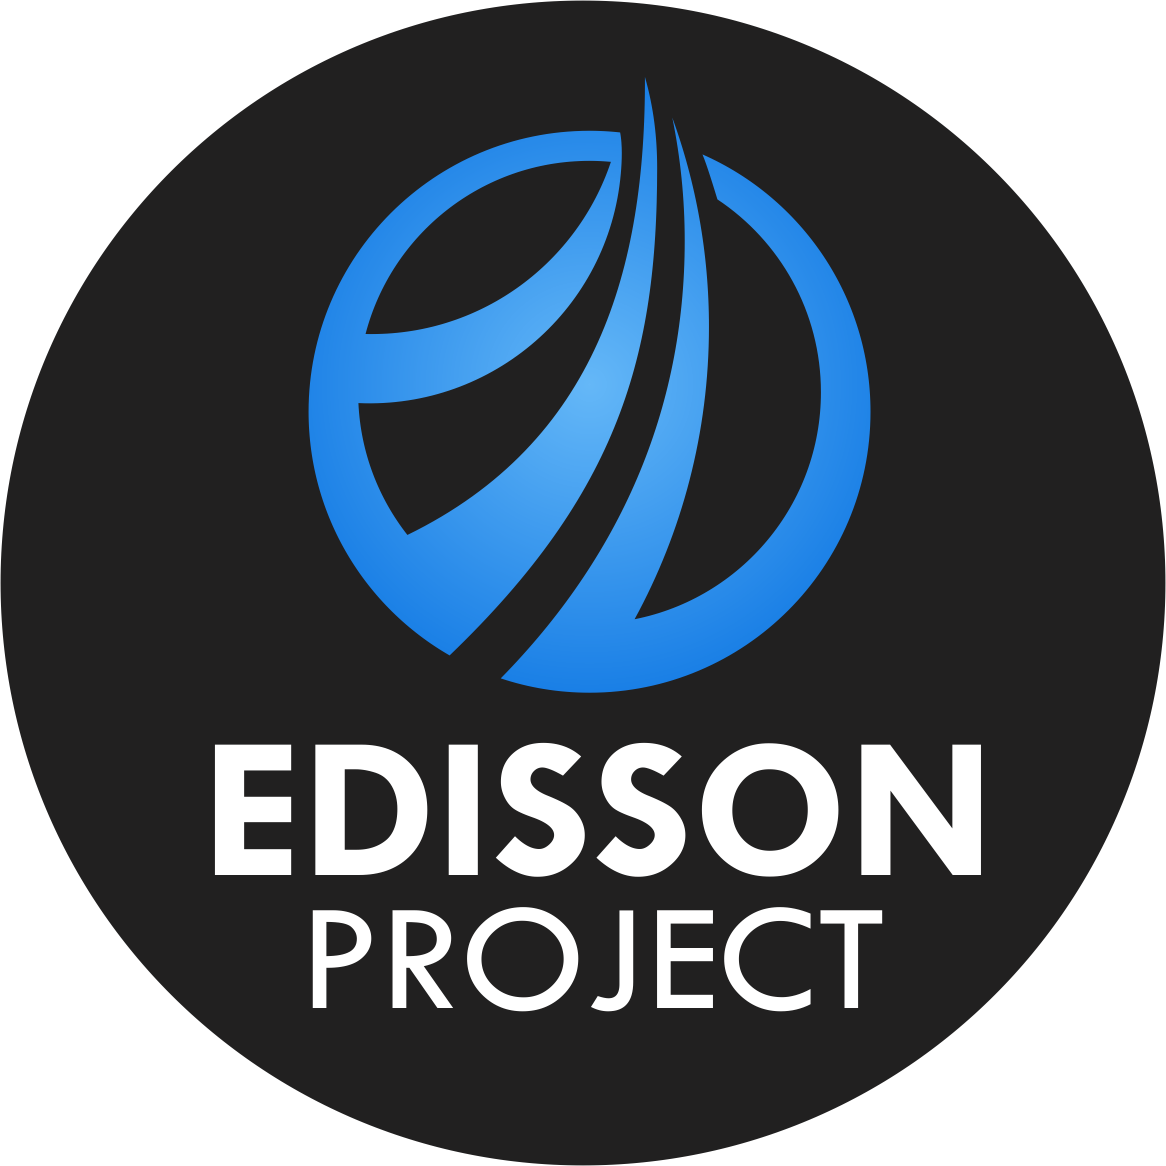 EDISSON+LOGO_final.png